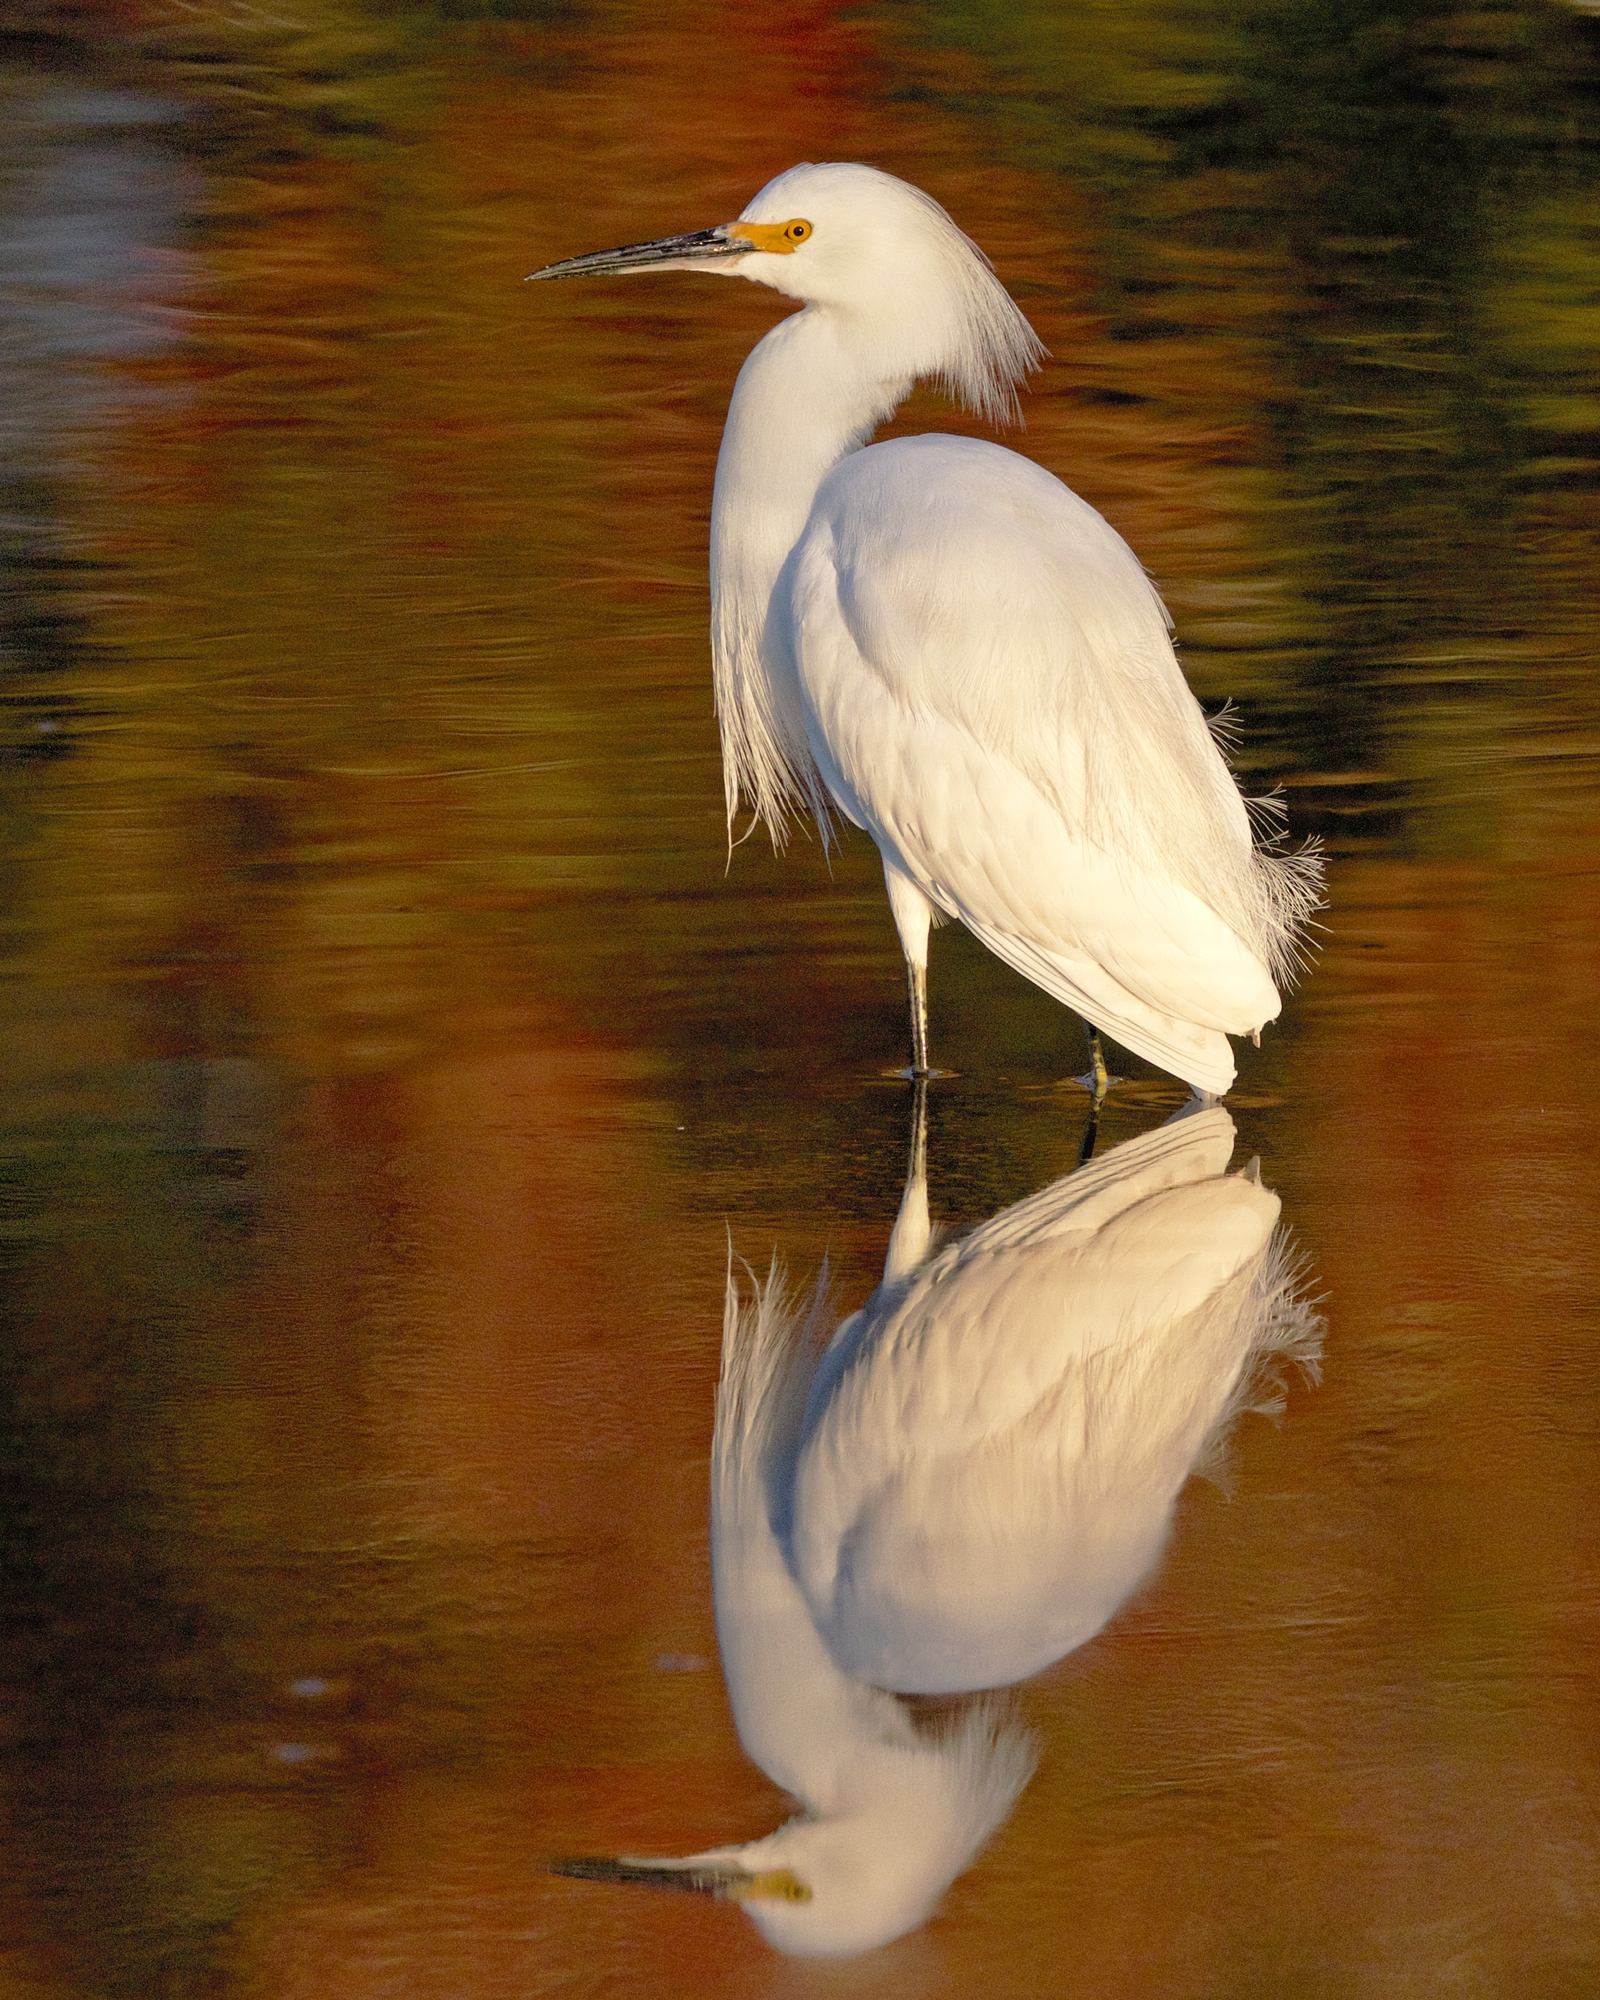 Snowy Egret with a splash of fall colors...one of my favorite captures this year